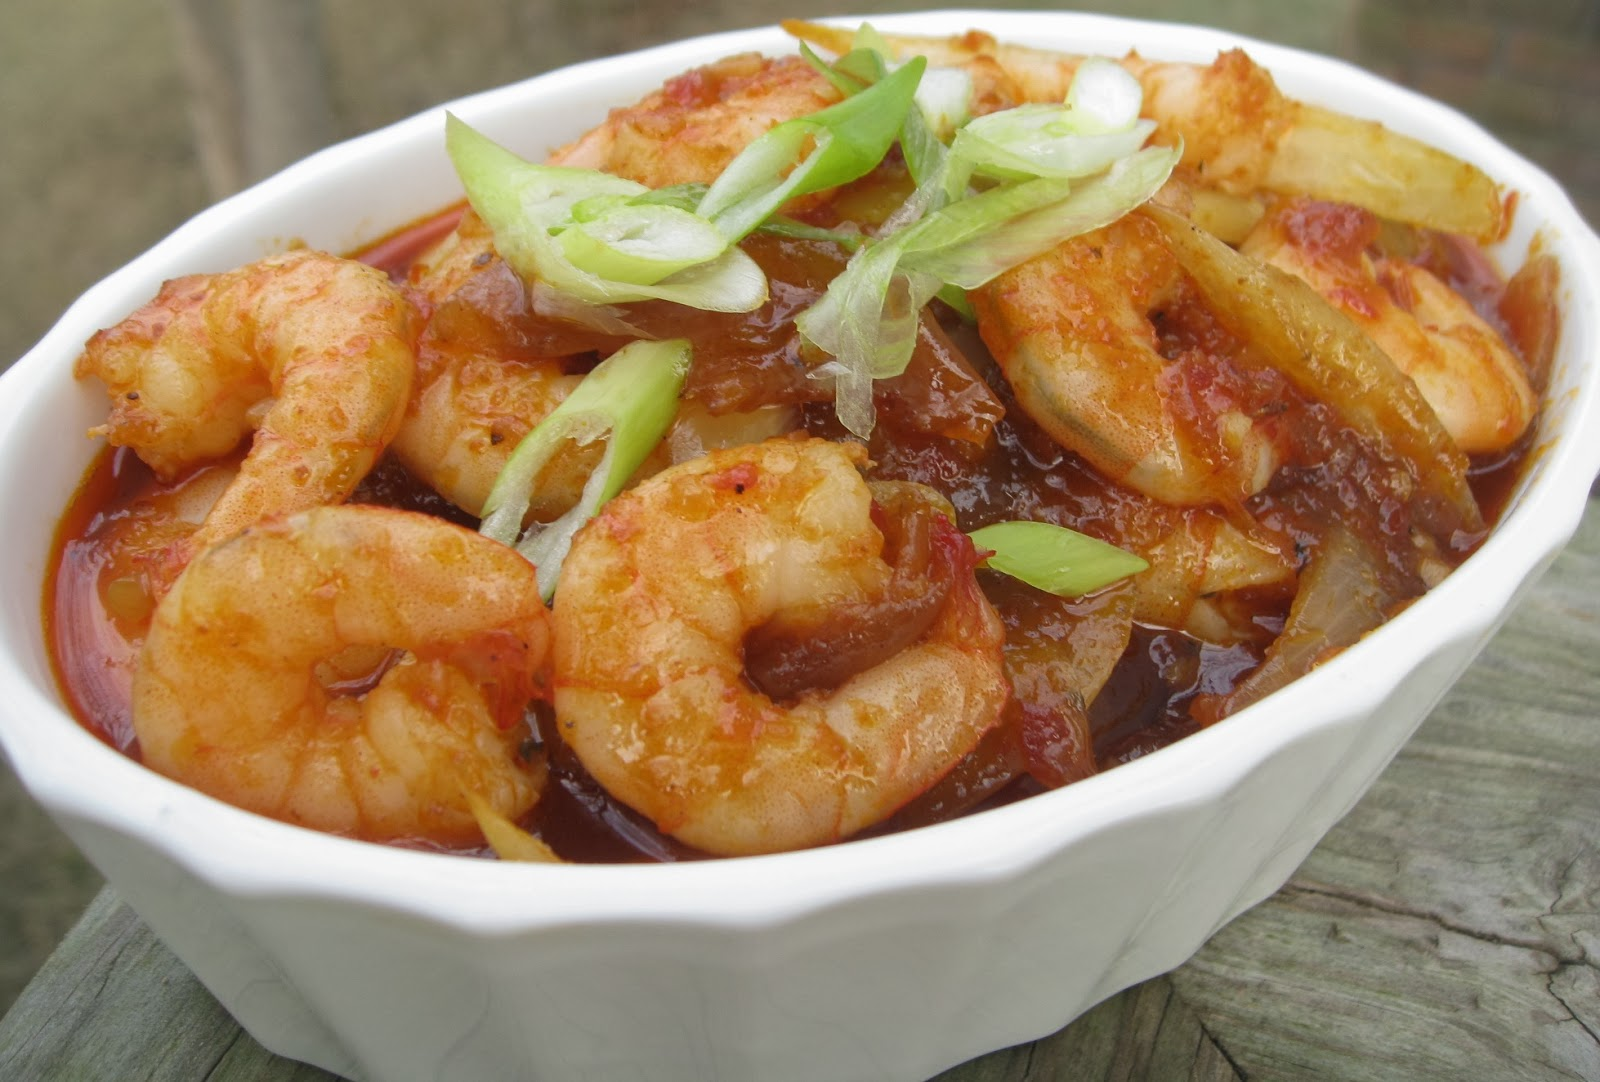 My Asian Kitchen: Sambal Udang (Spicy Chili Prawn)